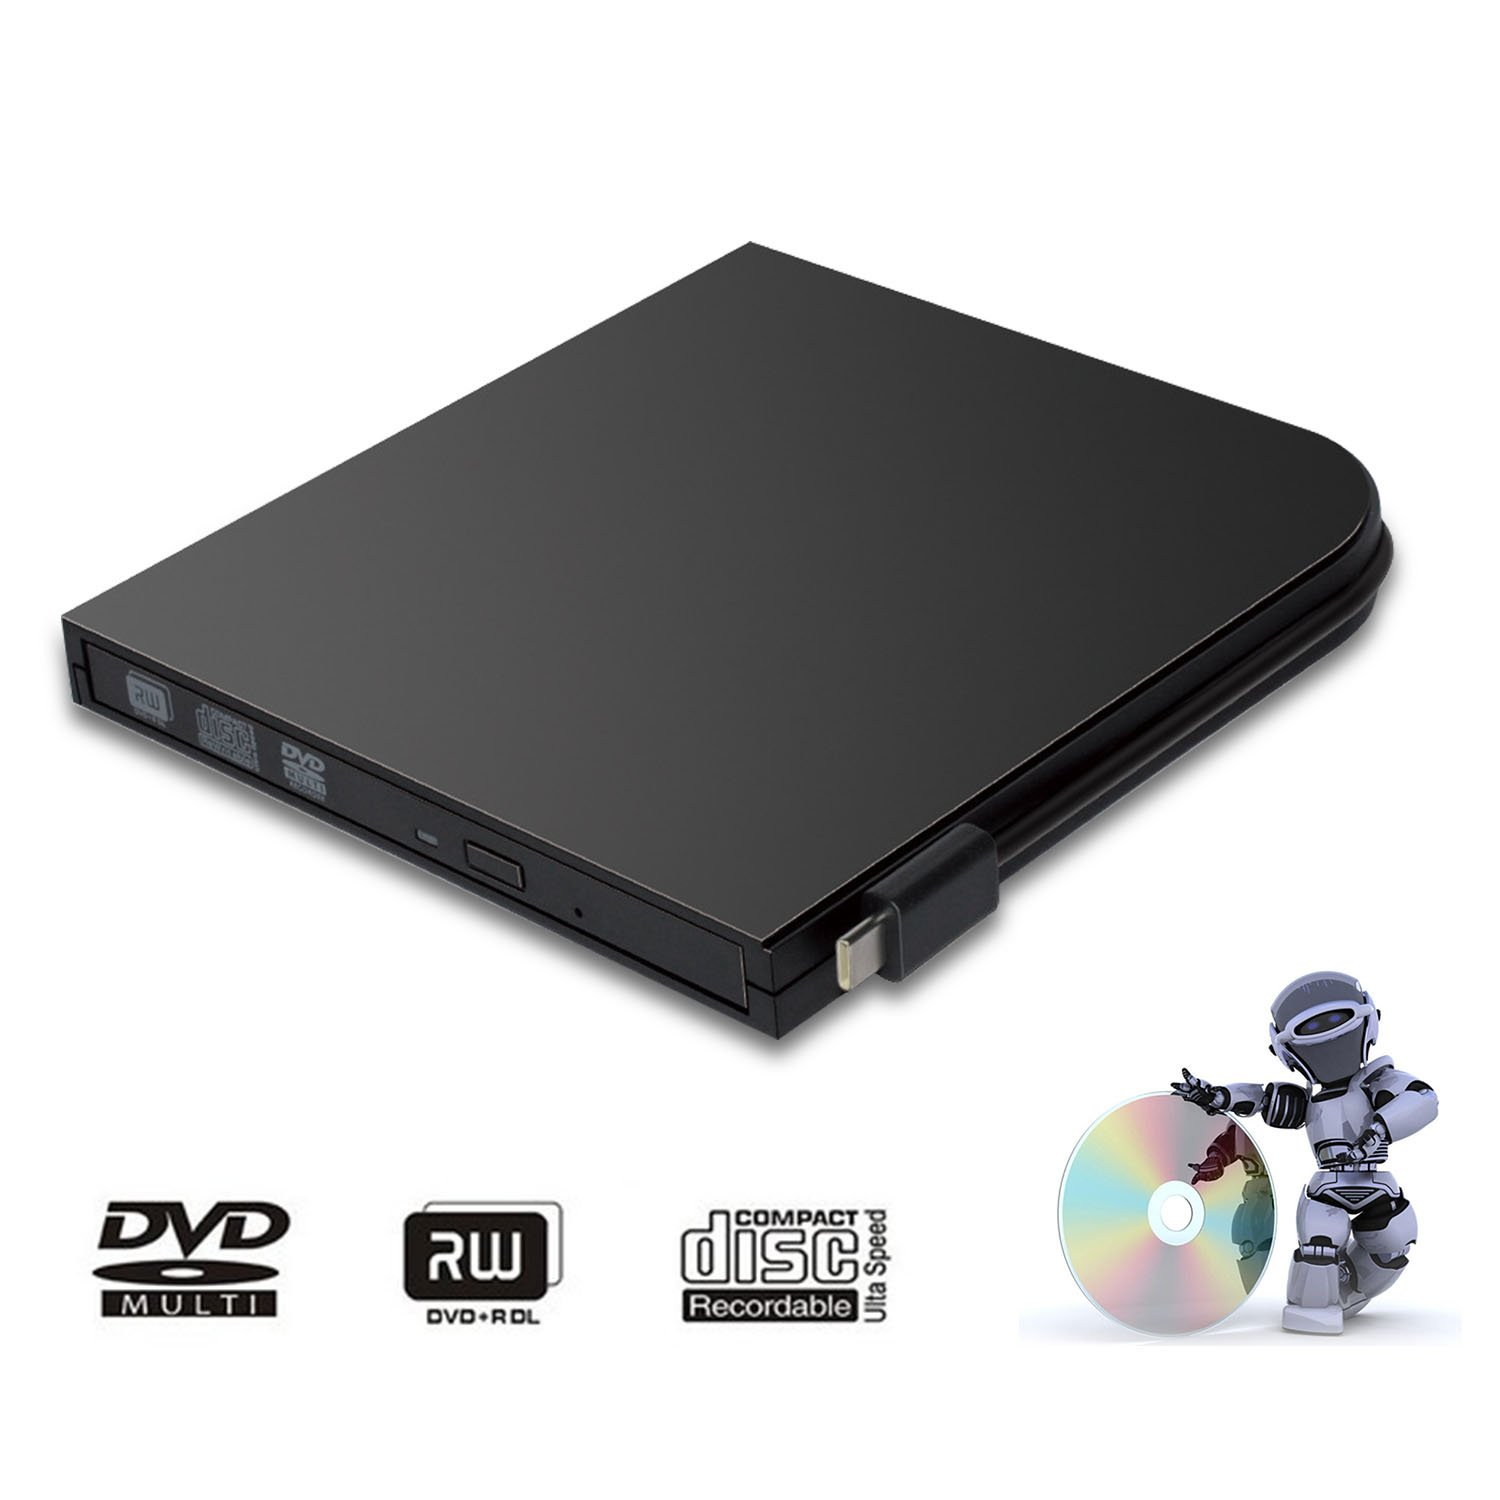 DVD Drive for PC DVD Drive computer CD Drive external dvd-rom player type-c external CD+/-RW buener USB portable DVD/CD ROM reader for various brands of desktops and laptops(not including tablets)